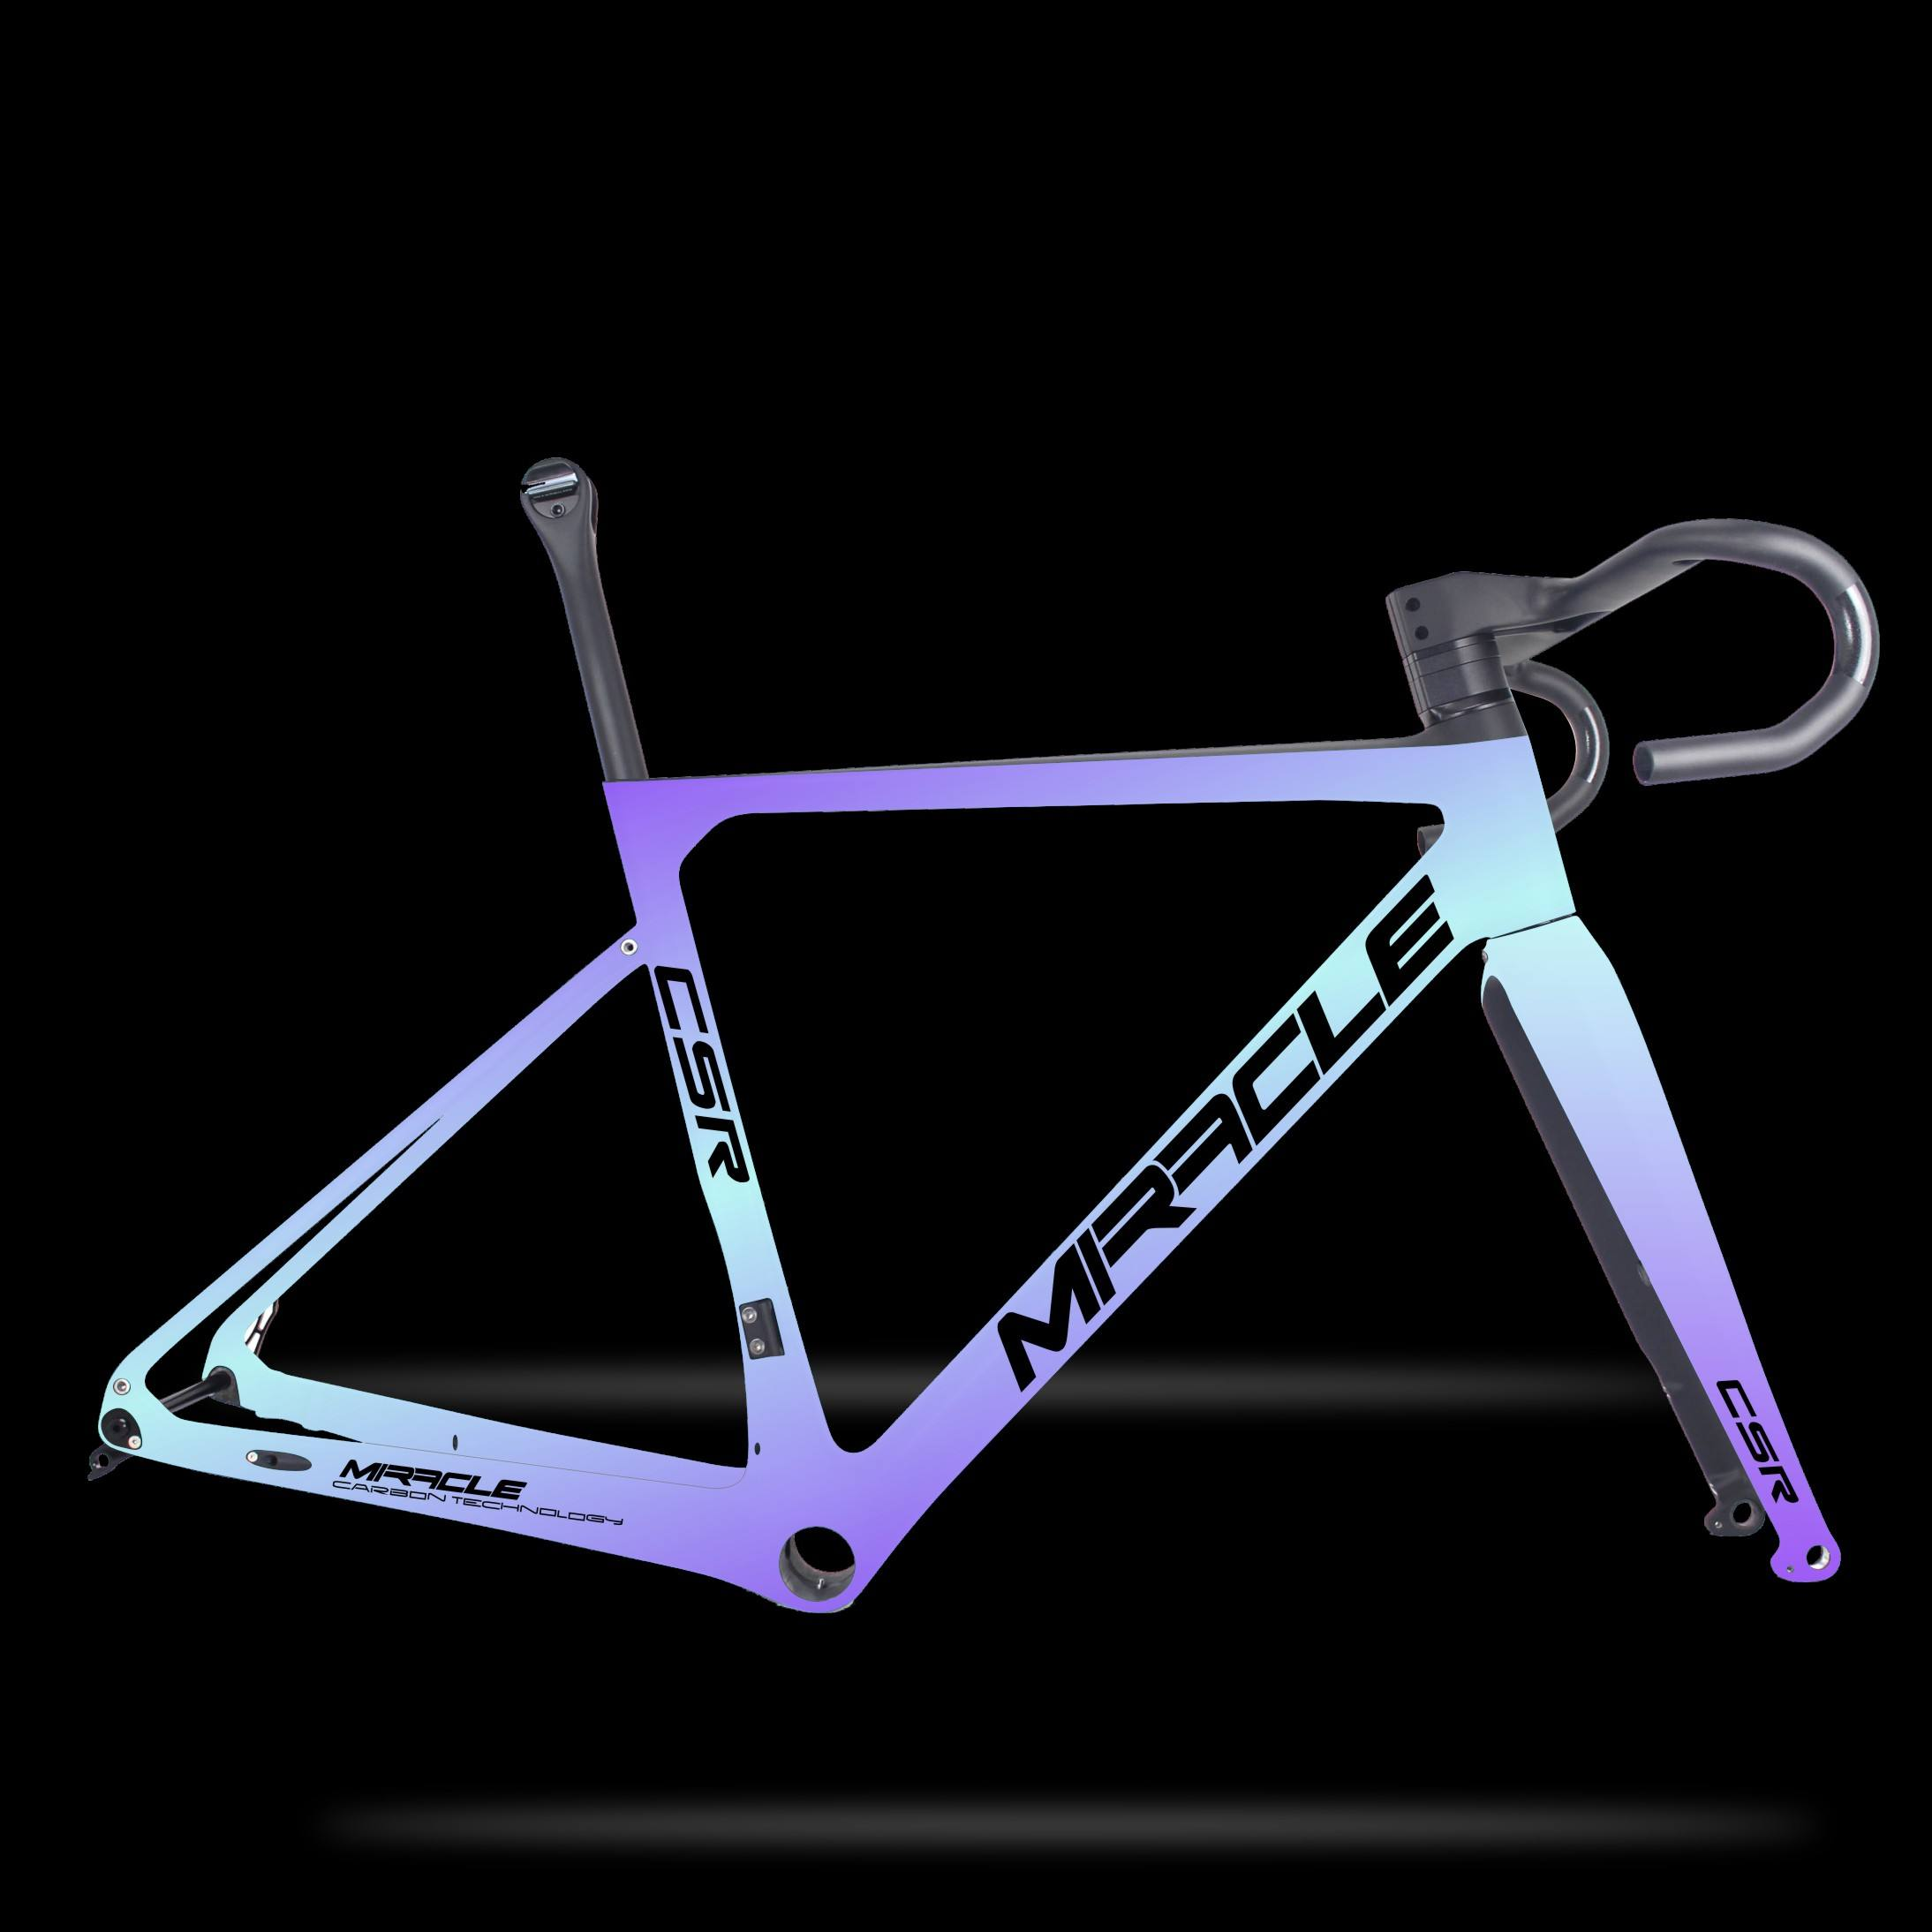 2020 Hottest Gravel Bikes Frame Super Light T1000 Carbon Fiber,Flat mount Disc brake Carbon bicycle frame